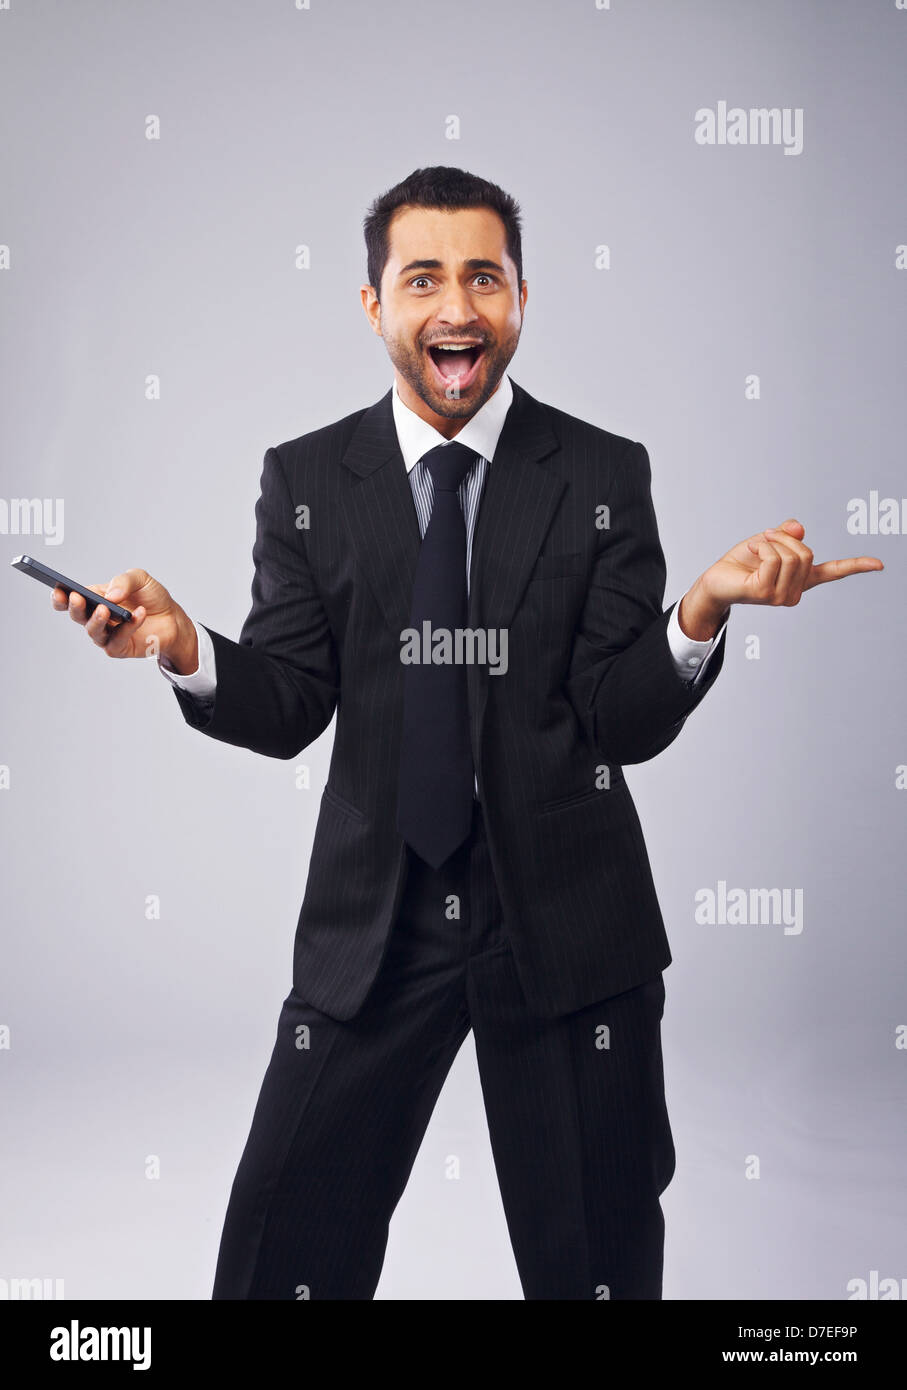 Cheerful young professional holding a phone while gesturing - Stock Image